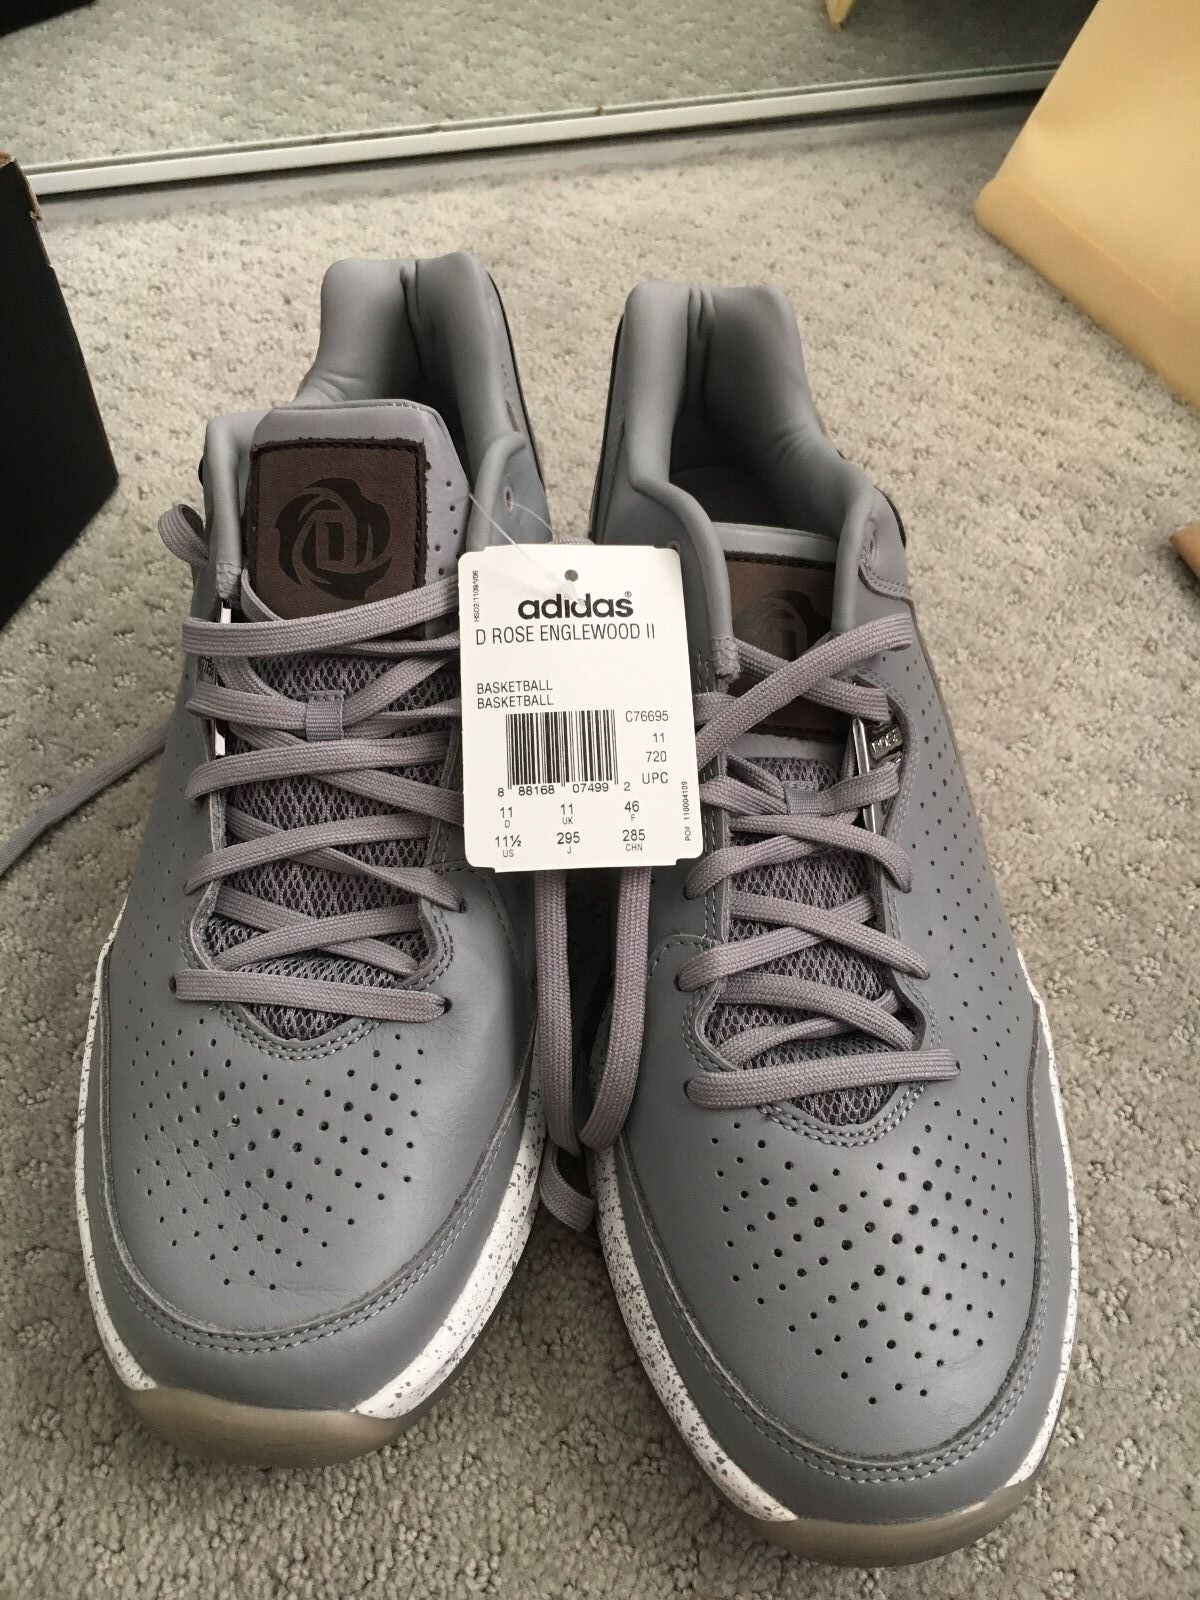 Men's D Rose Englewood II Grey 1/2 Basketball Shoes Size 11 1/2 Grey 77d40d